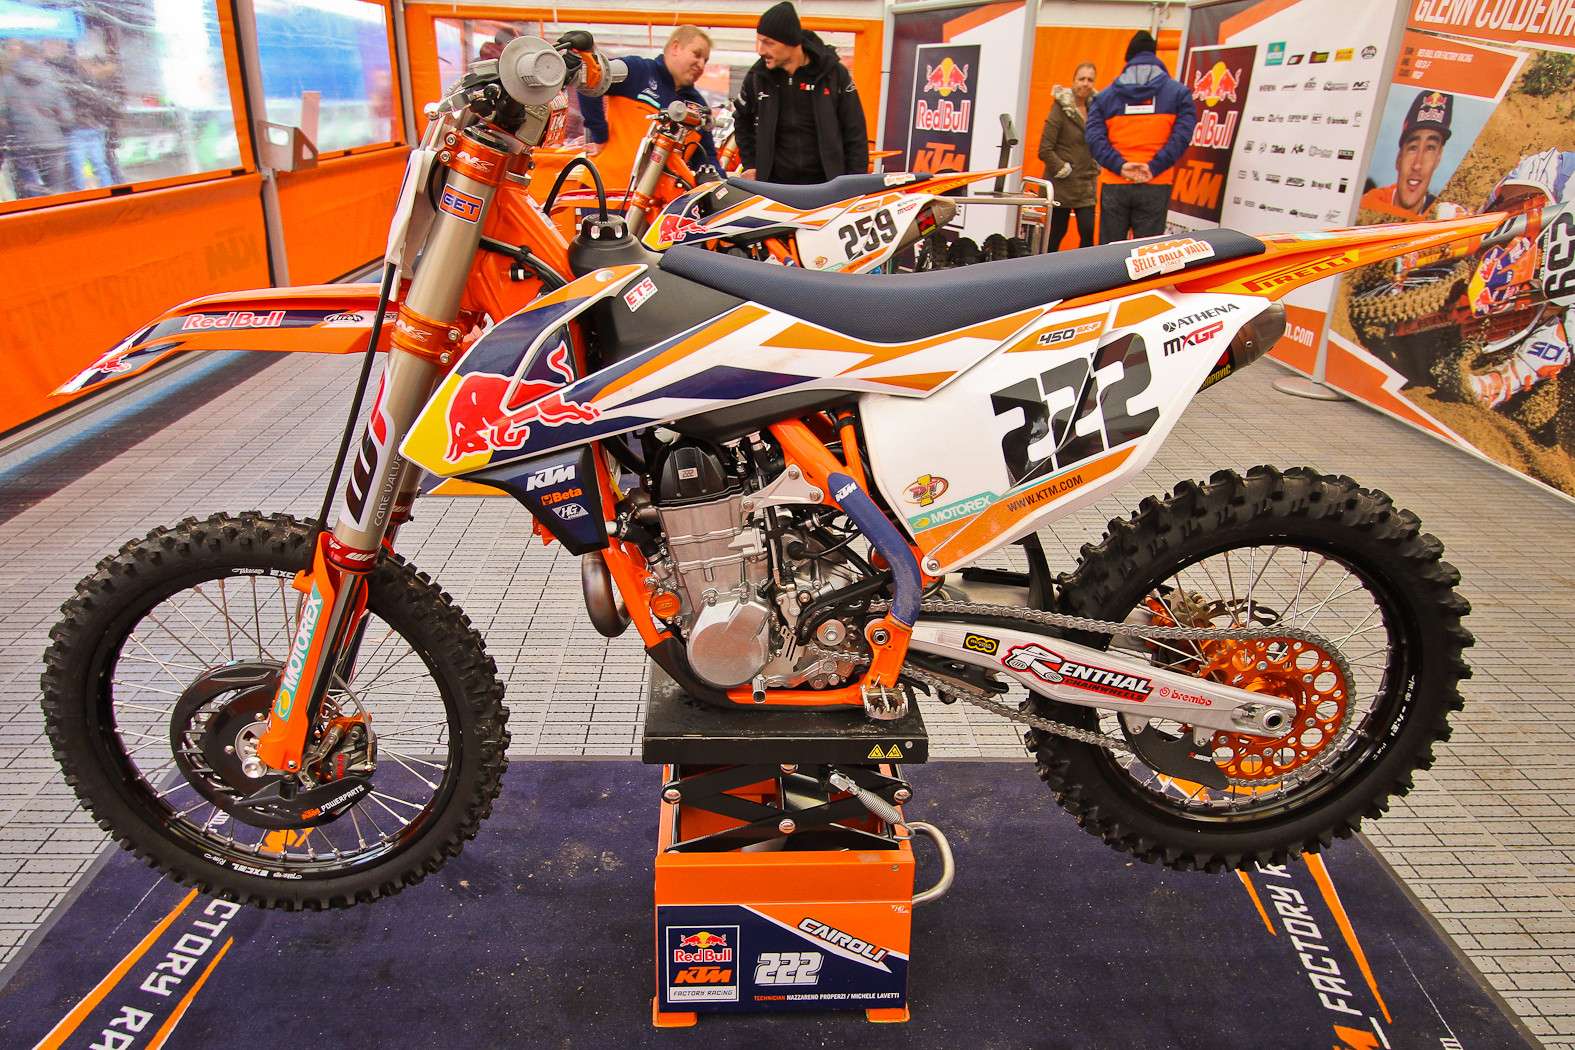 Toni Cairoli - In the Pits: MXGP of Europe - Motocross Pictures - Vital MX